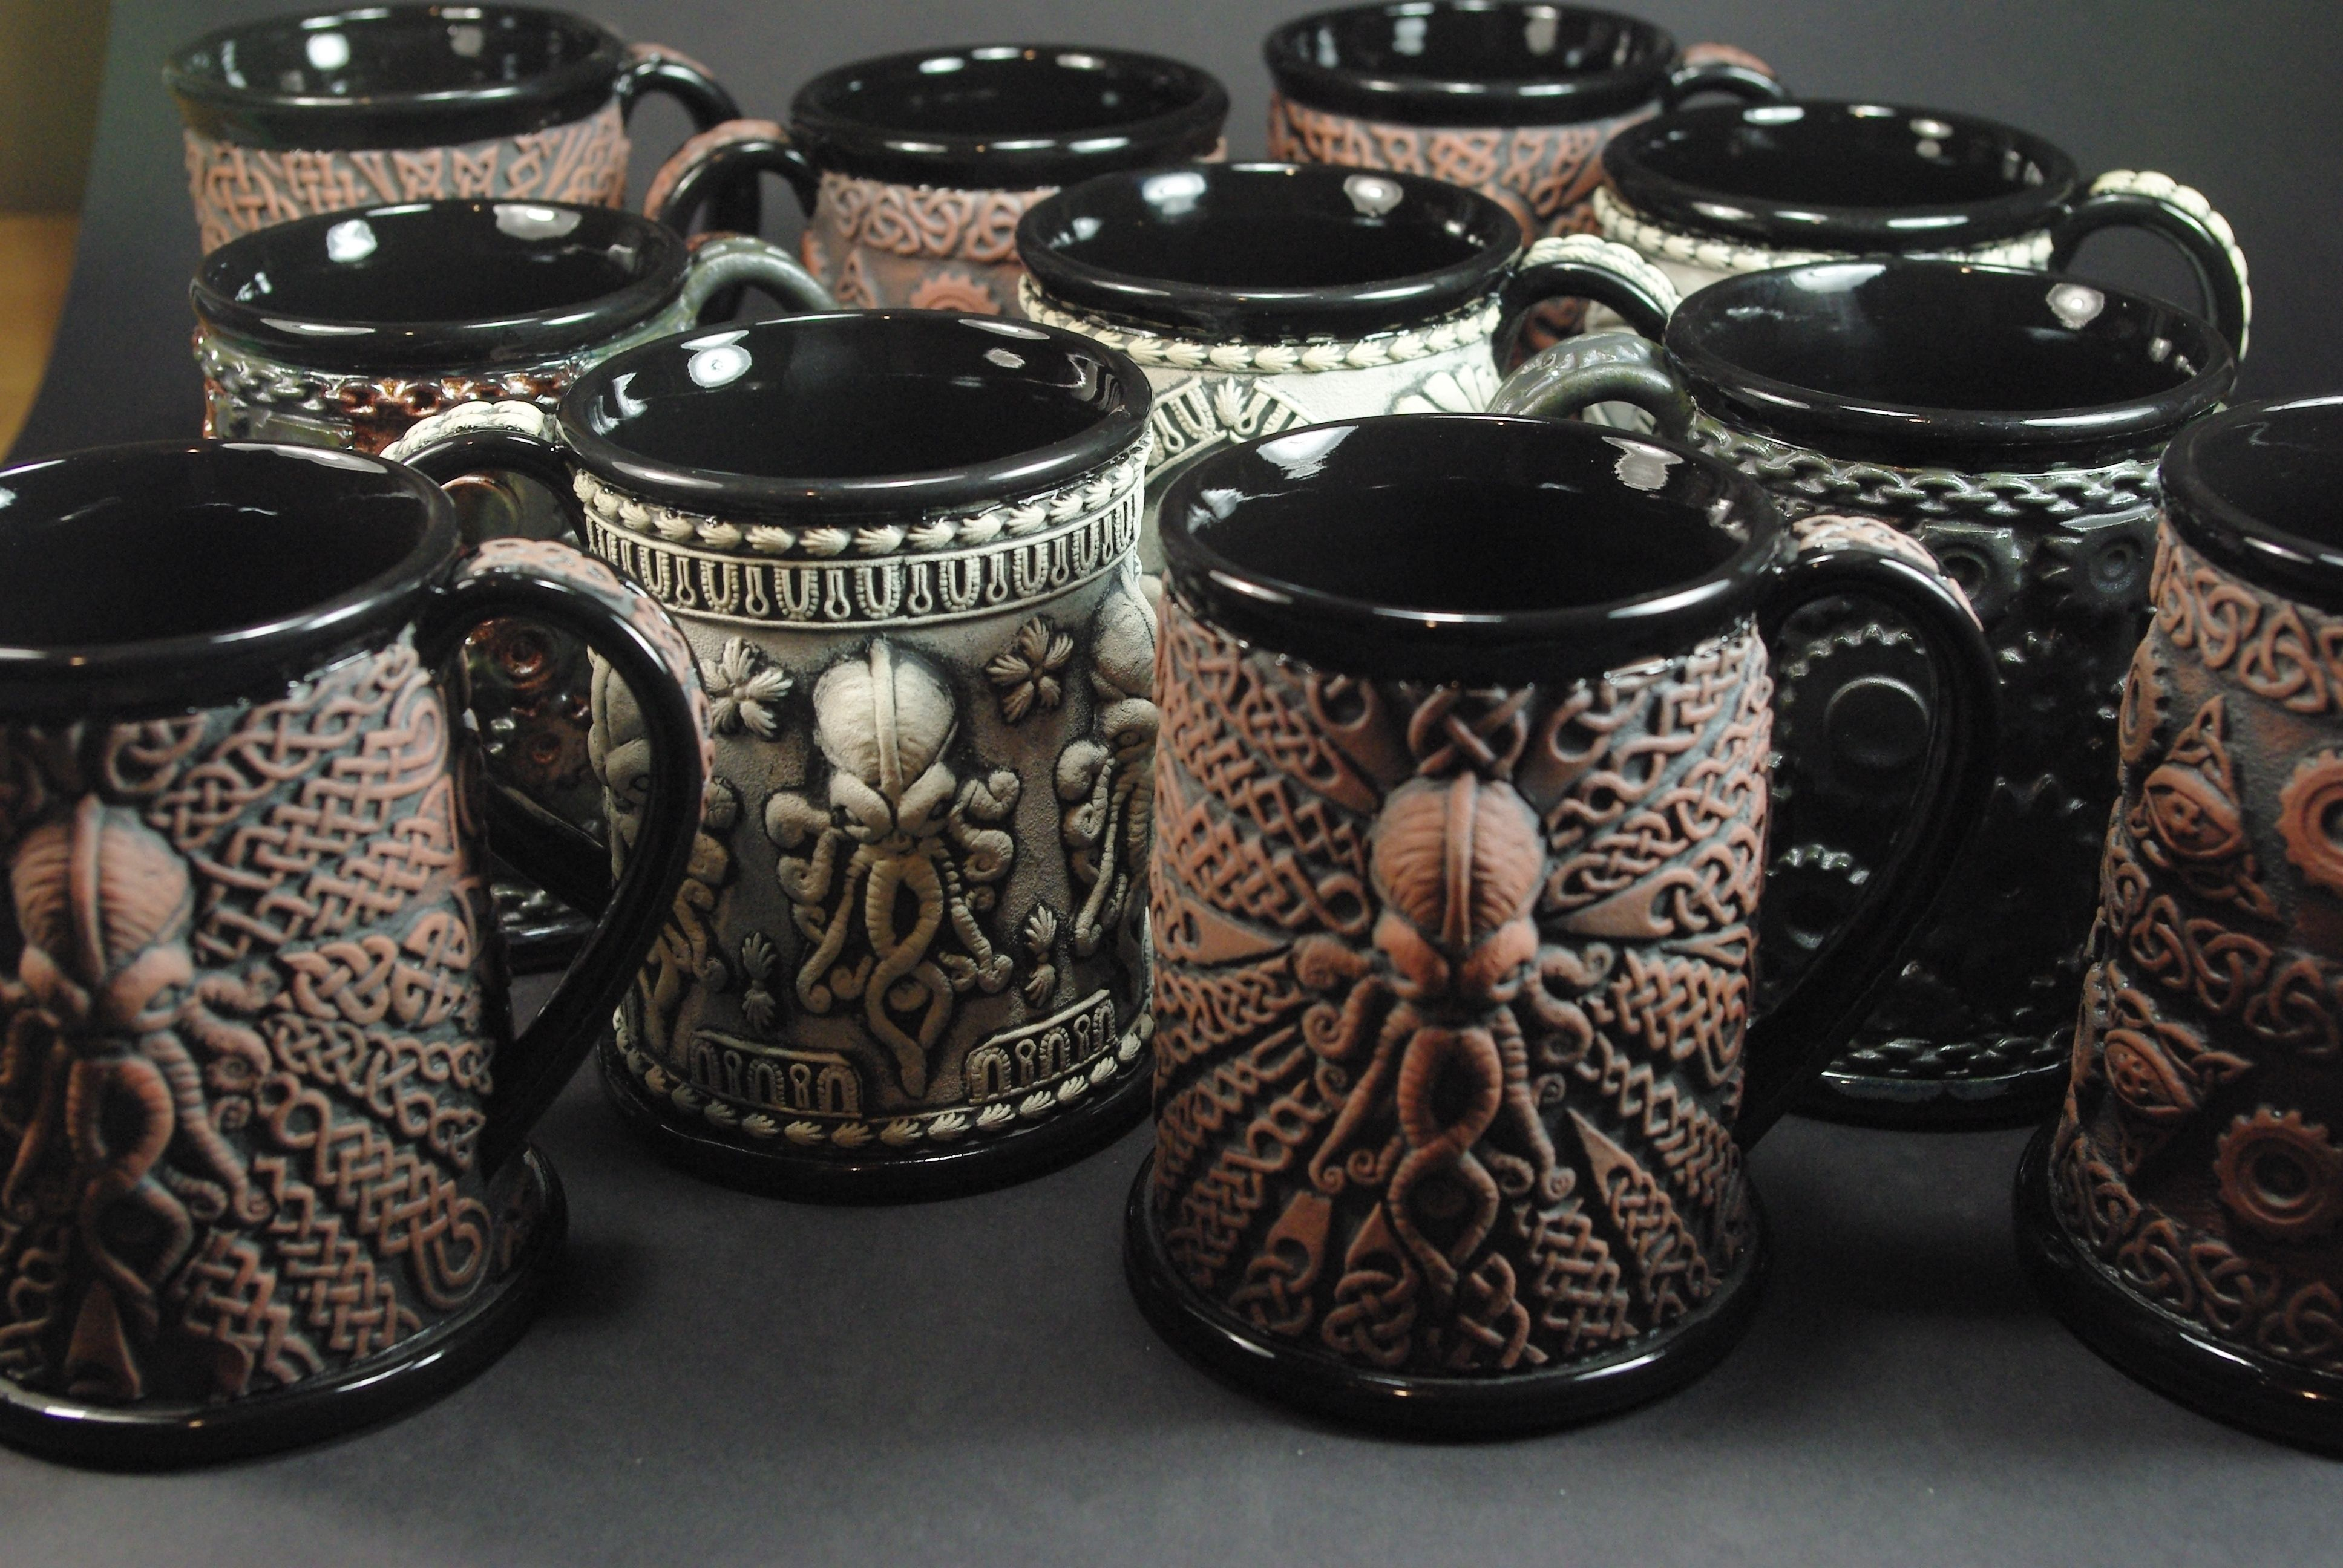 Some Of My Limited And Open Edition Beer Steins Andrew Tarrant Trespasser Ceramics Beer Steins Steins Ceramics